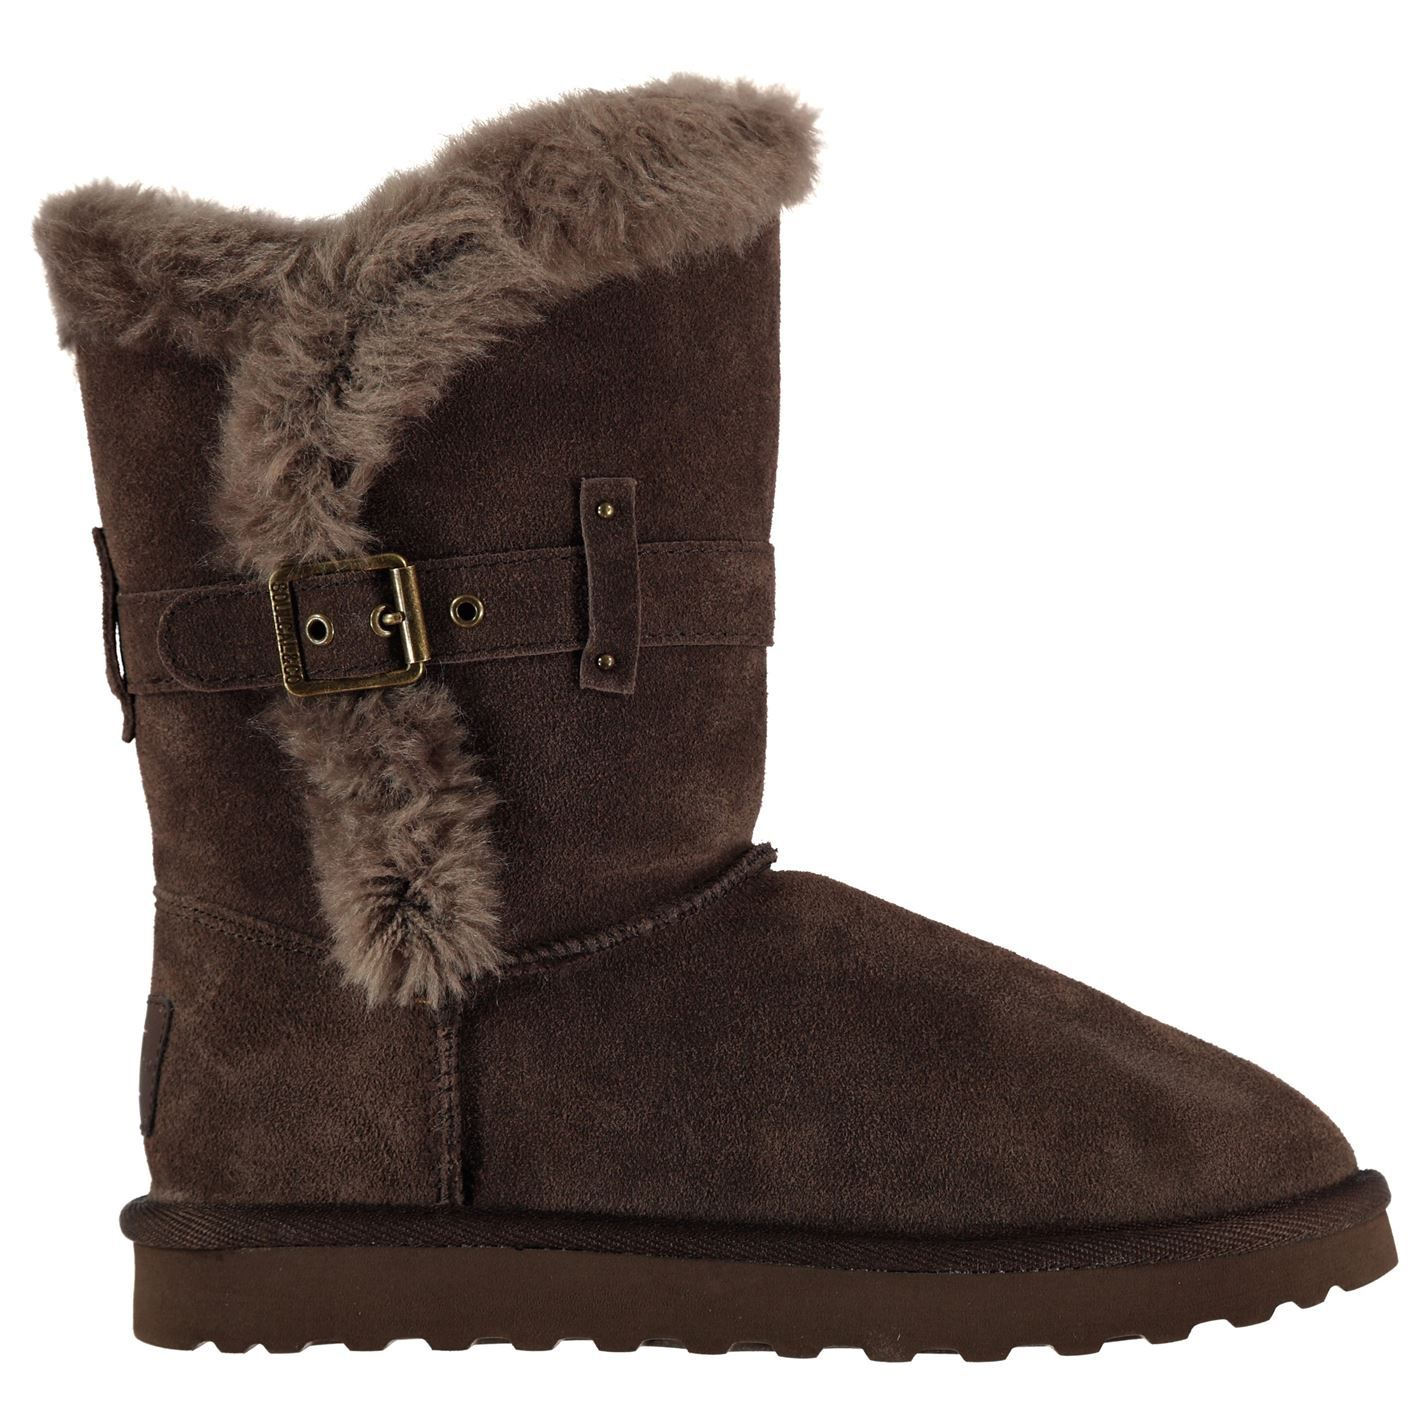 SoulCal Womens Ladies Bardi Buckle Strap Cosy Warm Snug Boots Winter Shoes